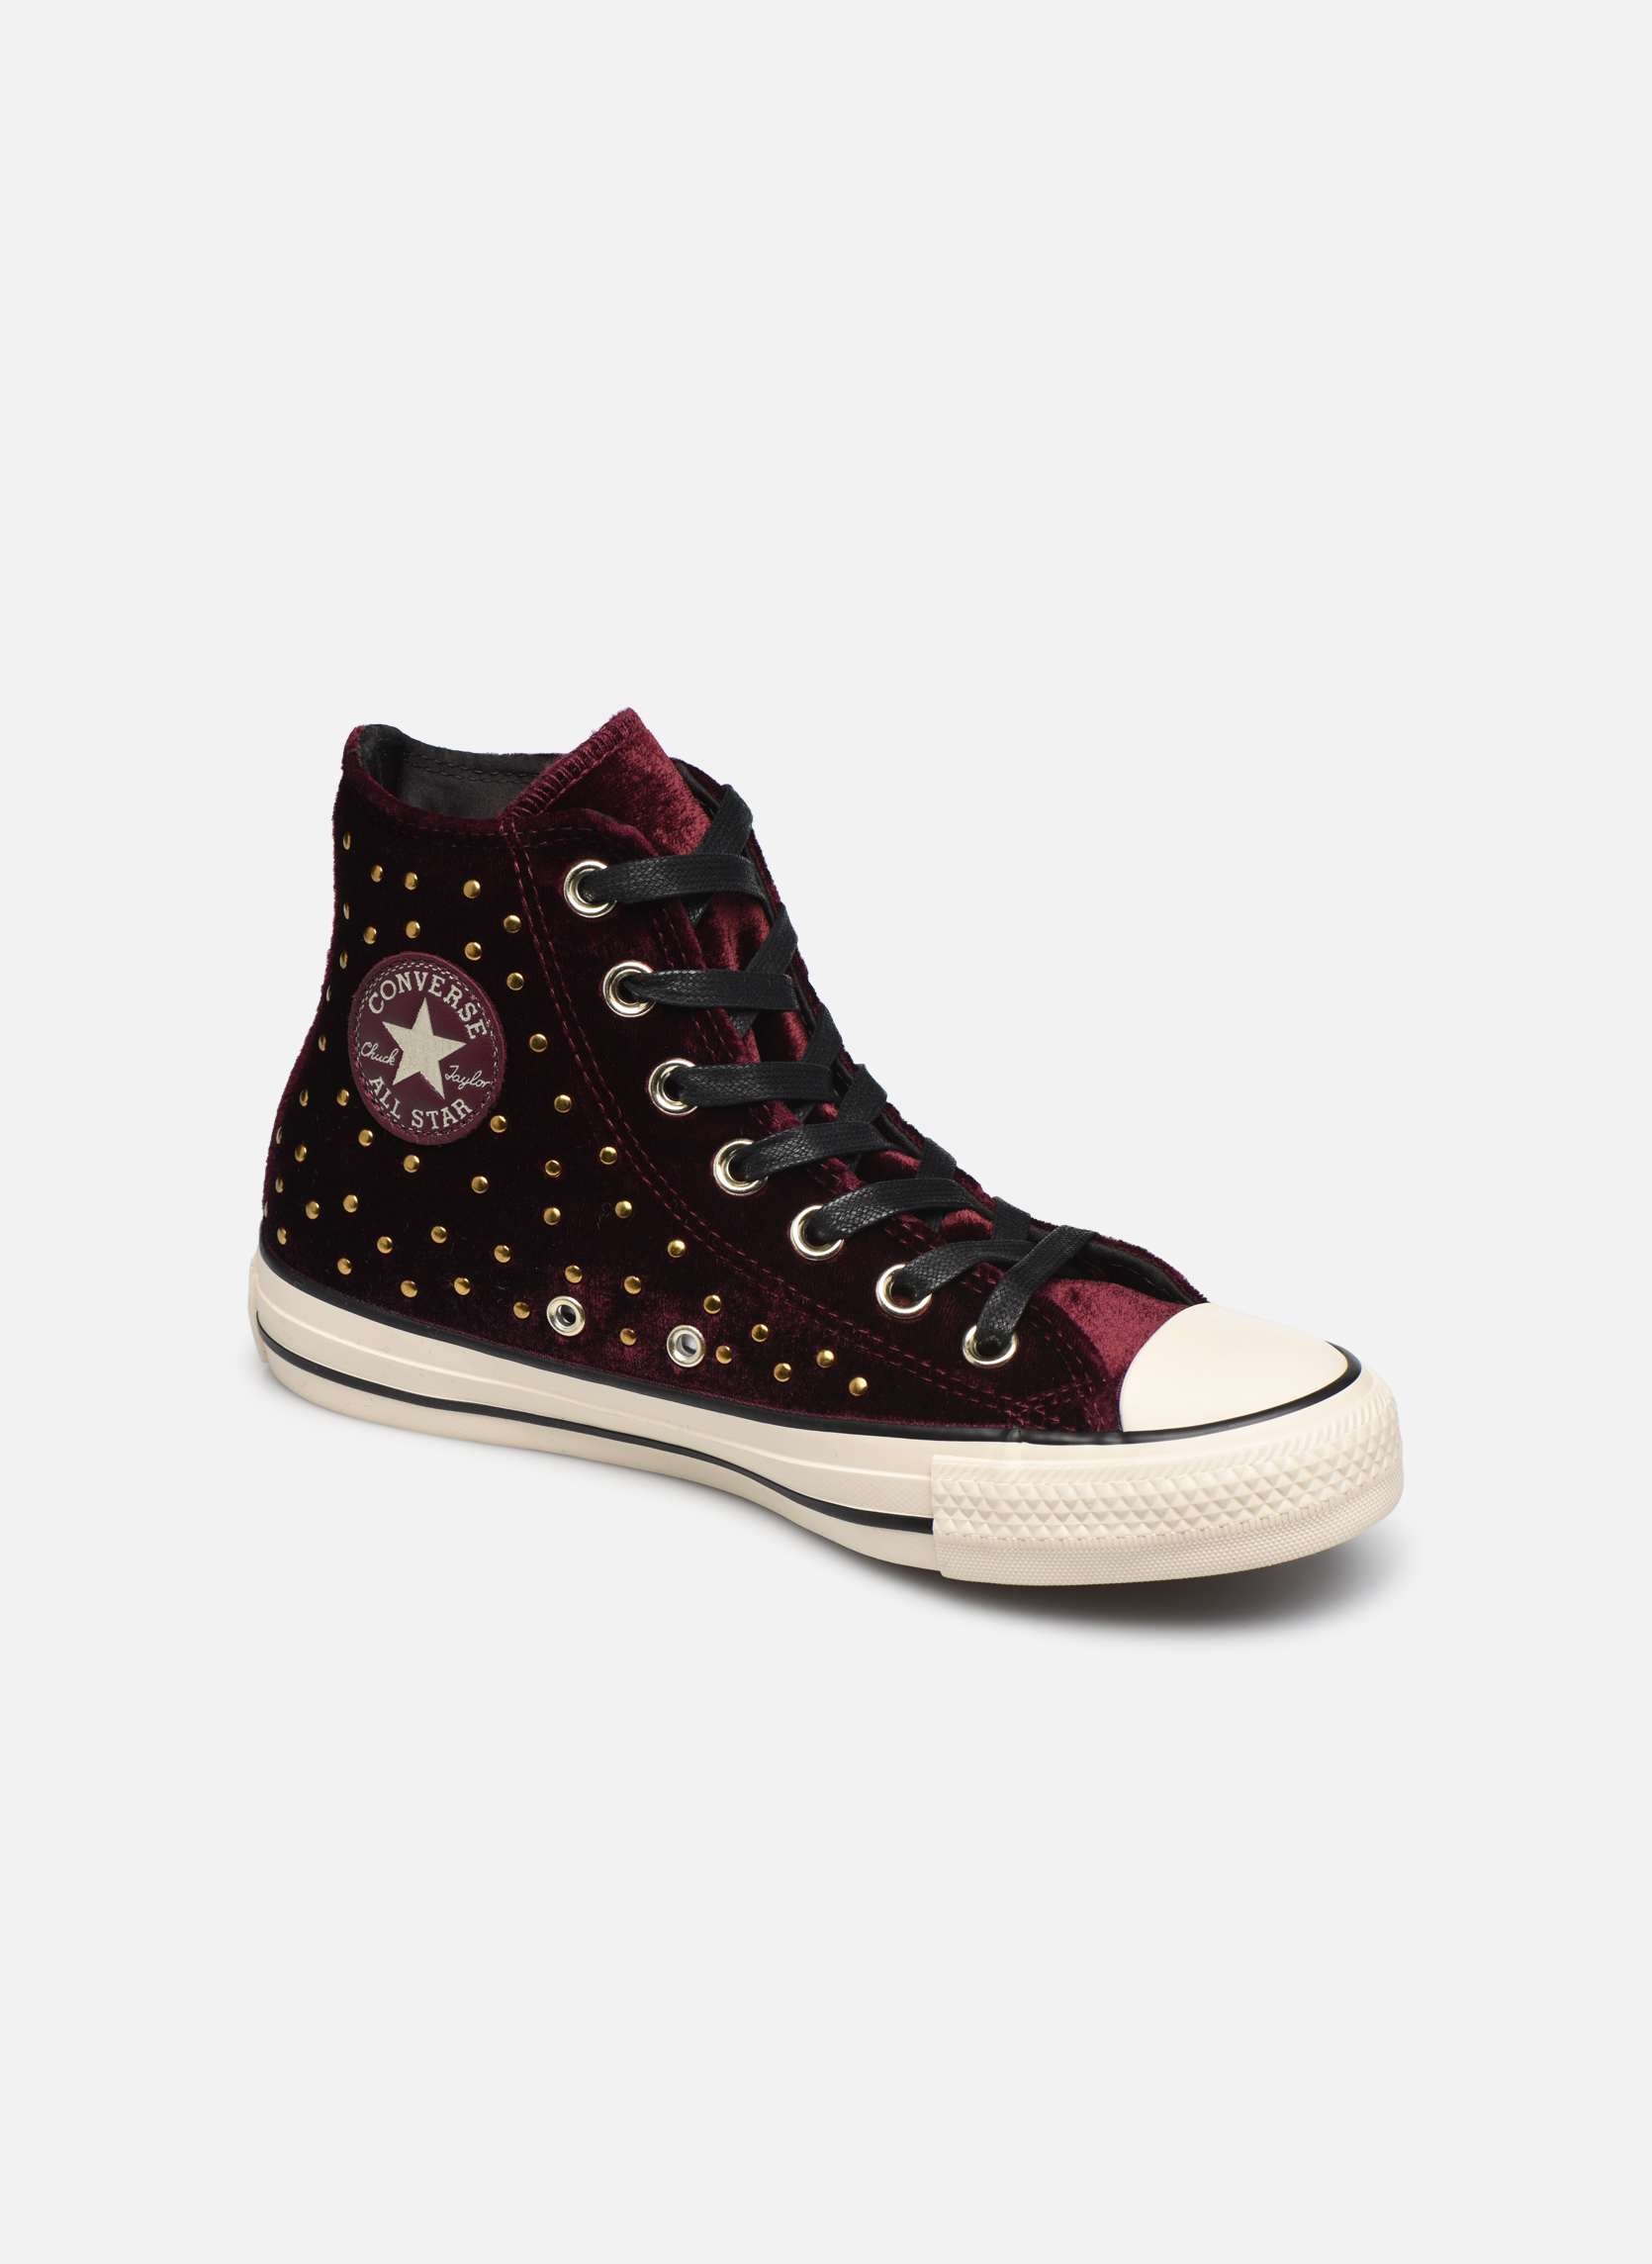 Converse Chuck Taylor All Star Velvet Hi Bordeaux